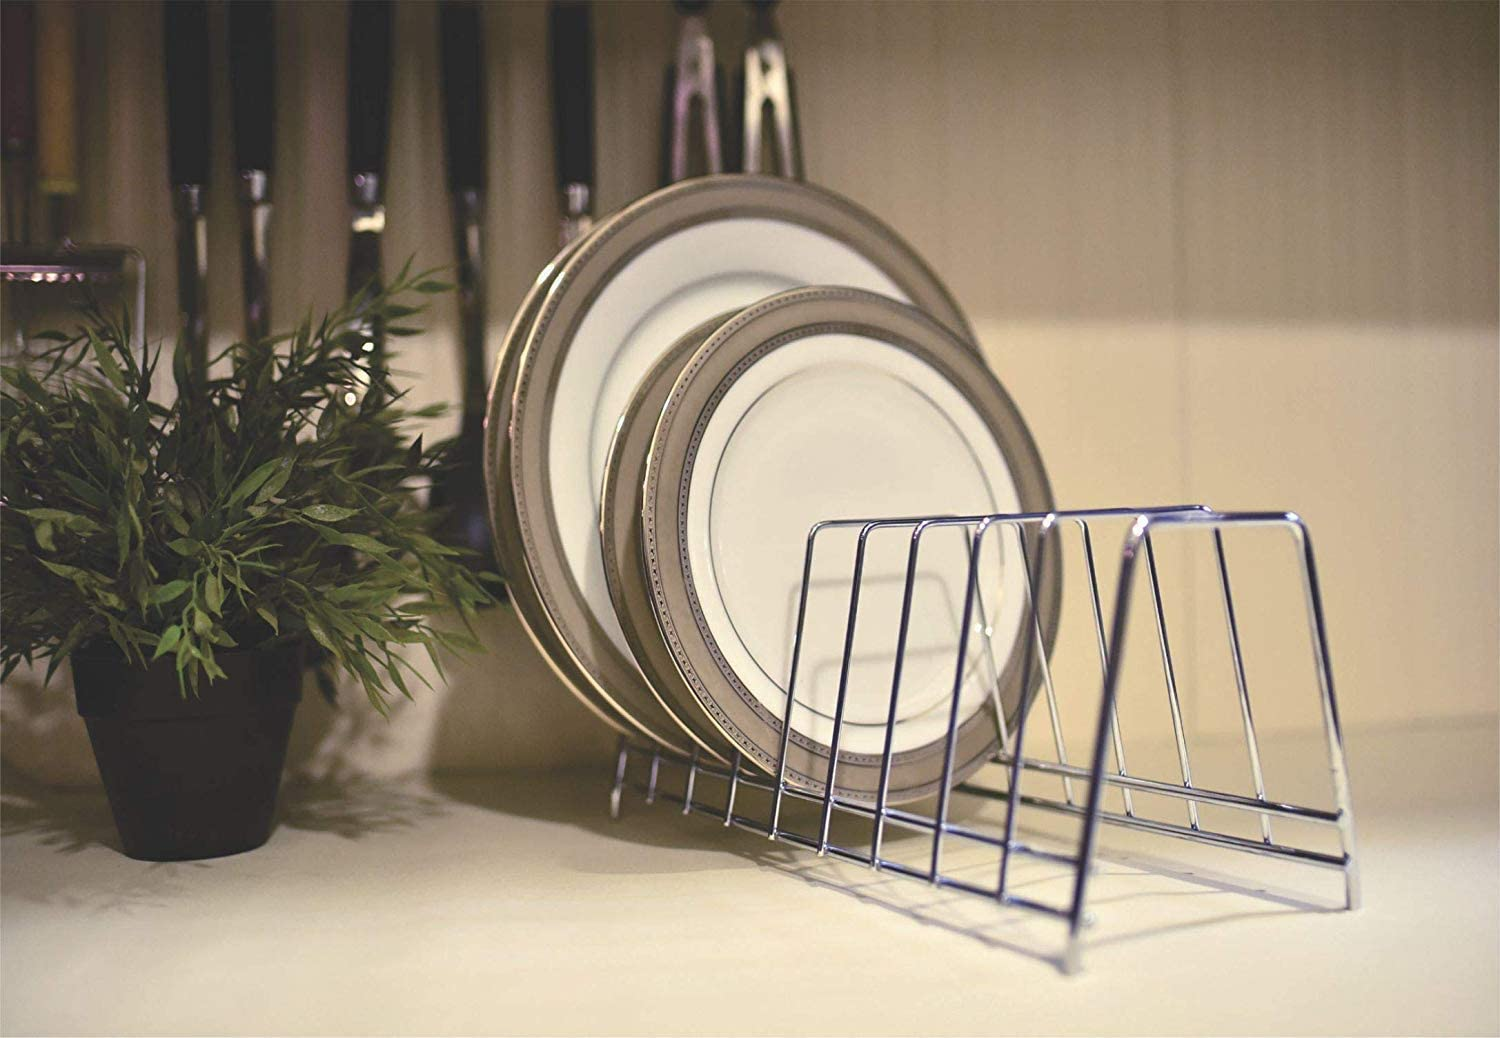 Levon Stainless Steel Plate Rack | Dish Rack | Plate Stand | Dish Stand | Lid Holder Utensil Rack for Kitchen - 6 Sections| with Anti-Rust Nano Coating